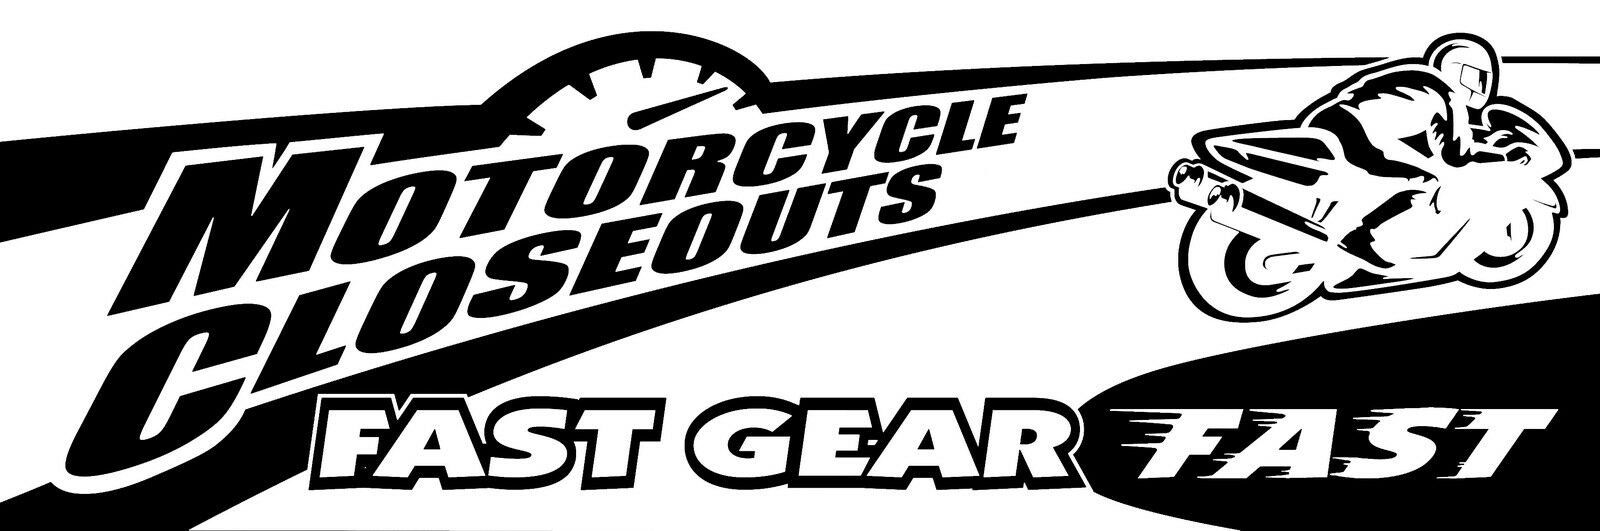 Motorcycle Closeouts